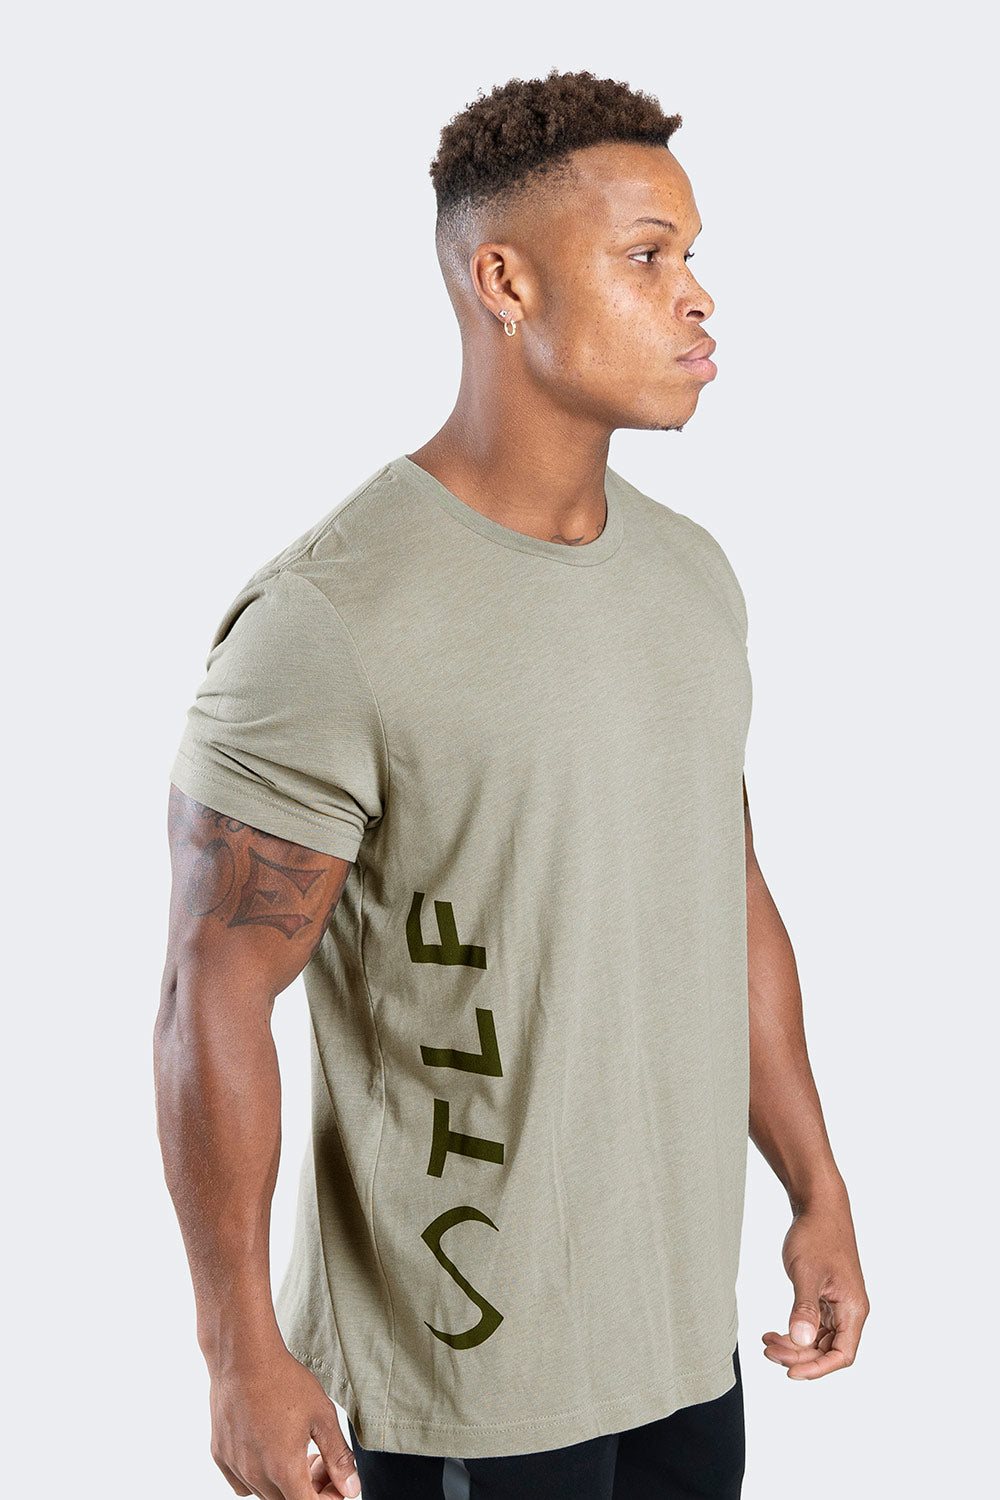 TLF Descend T-Shirt - GRAPHIC T-SHIRTS - TLF Apparel | Take Life Further